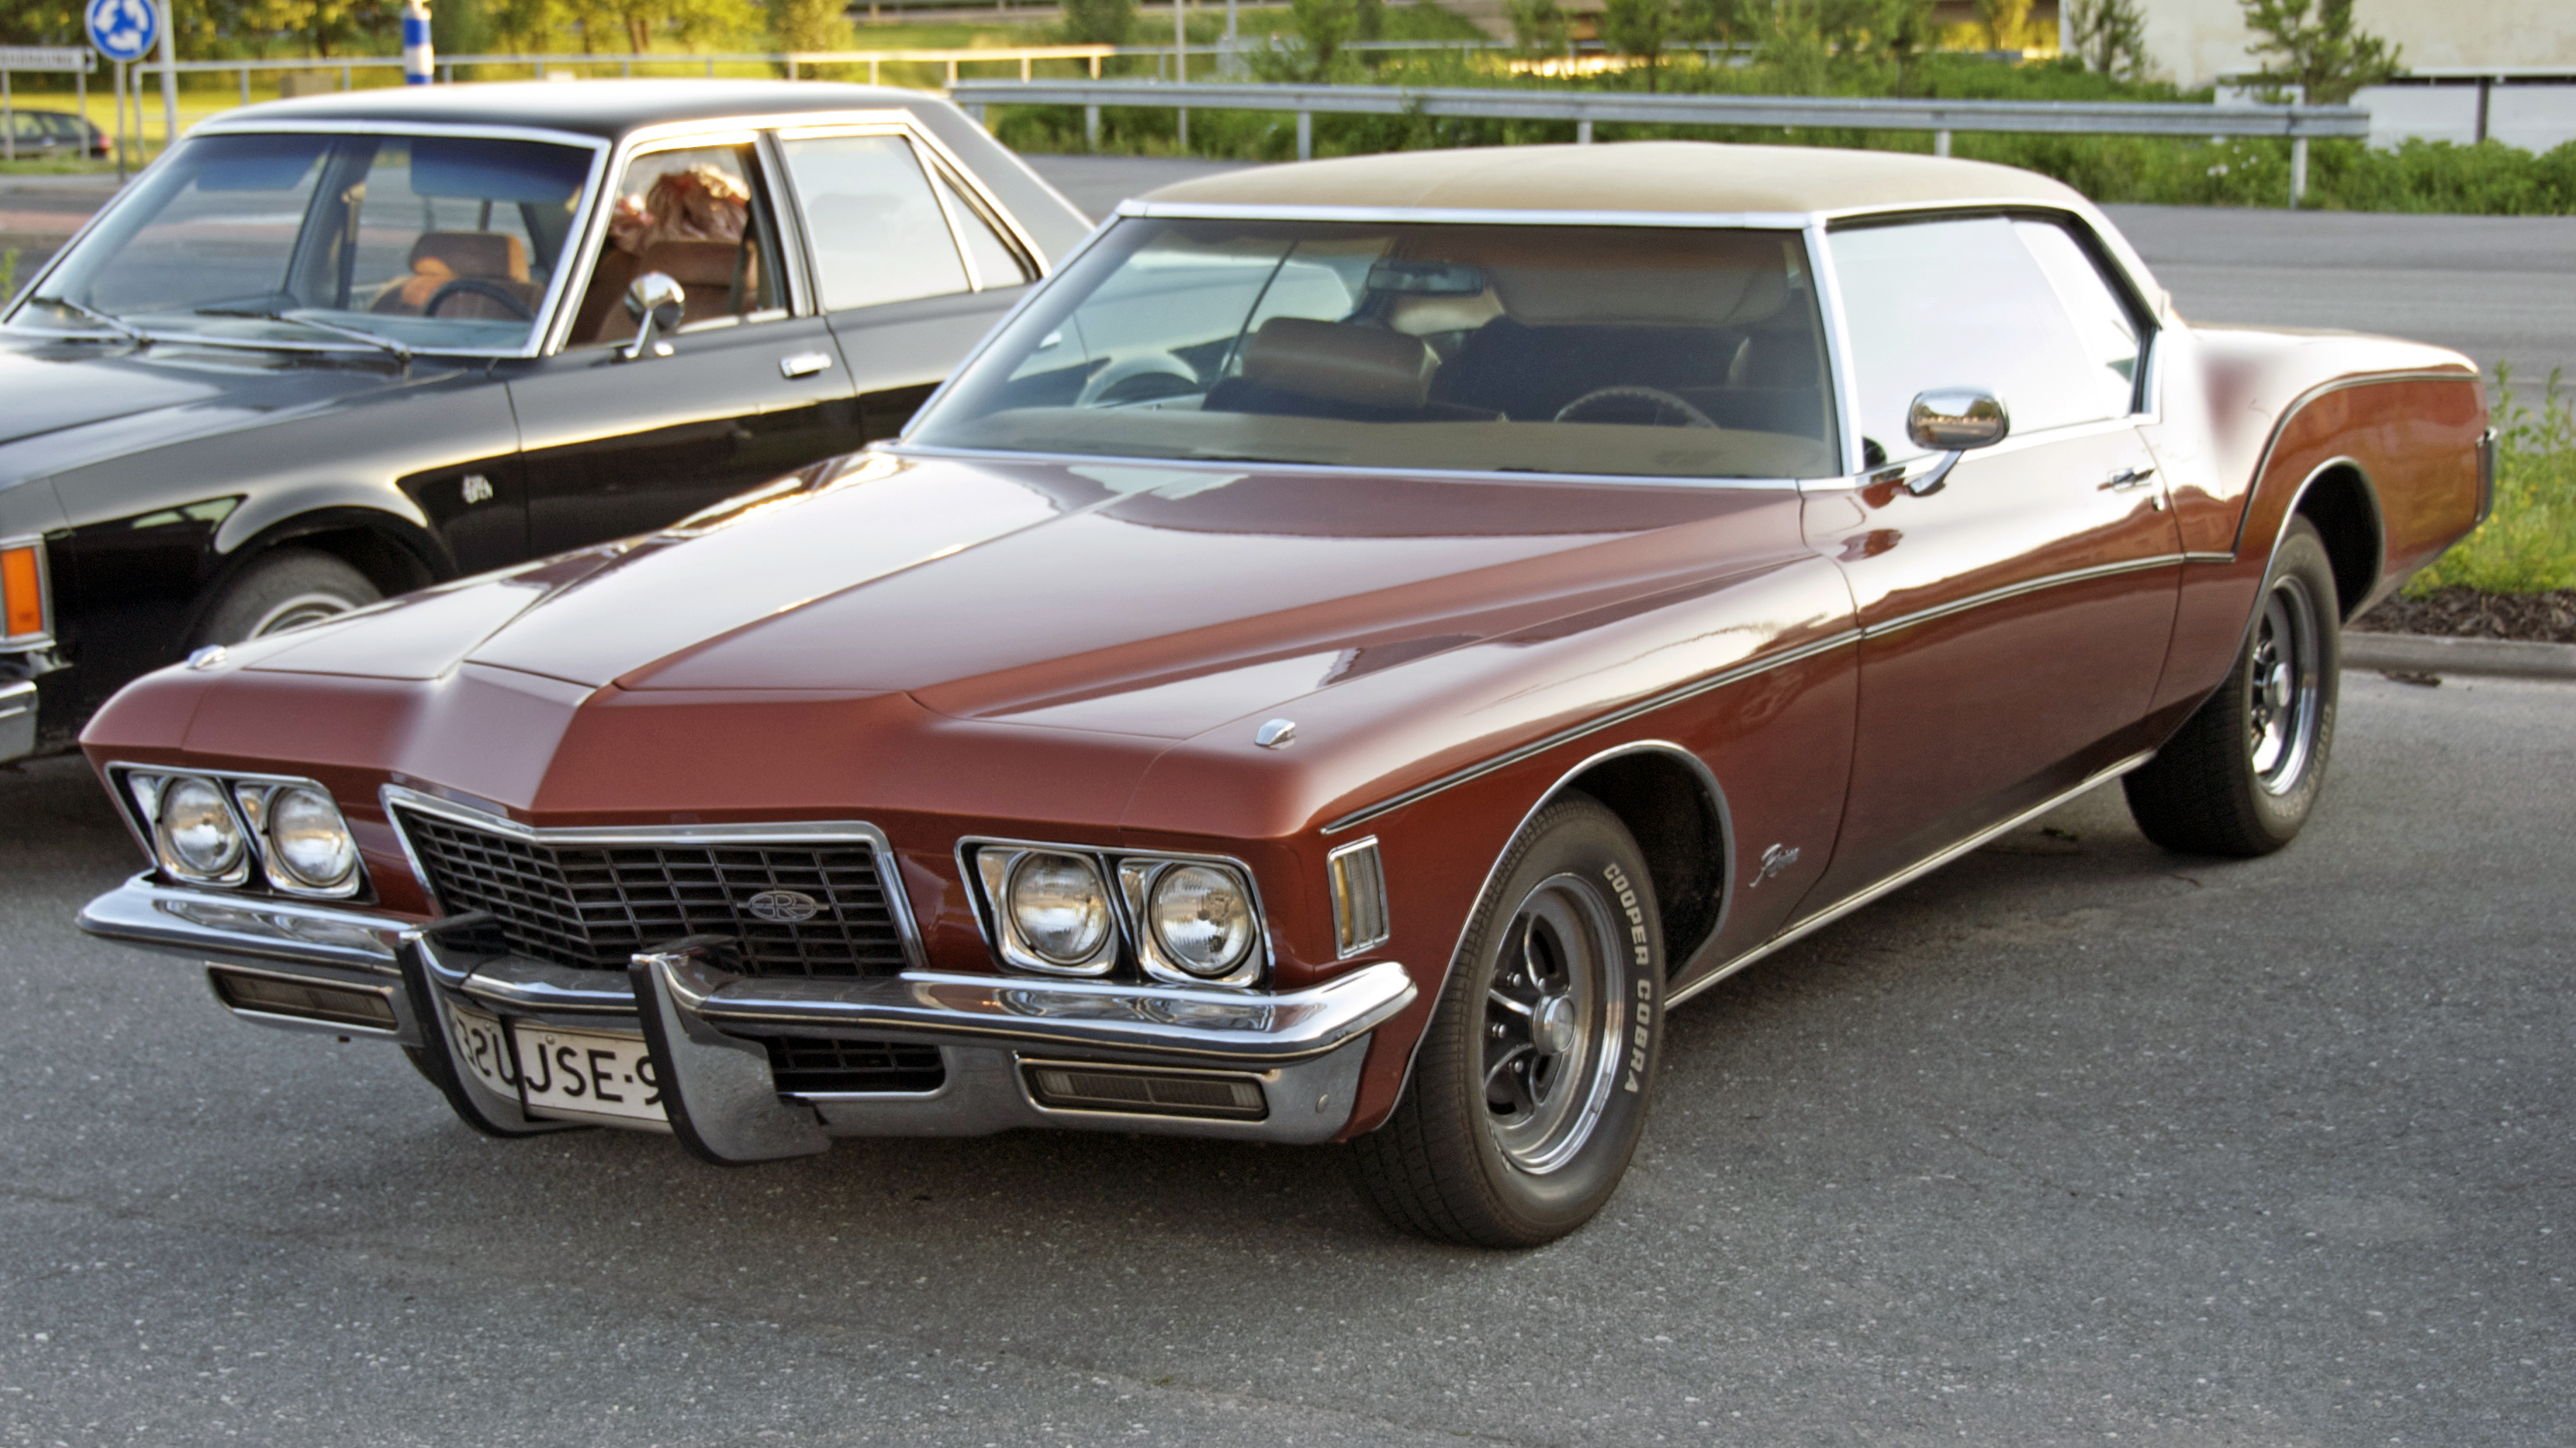 File:1972 Buick Riviera in Finland.jpg - Wikimedia Commons